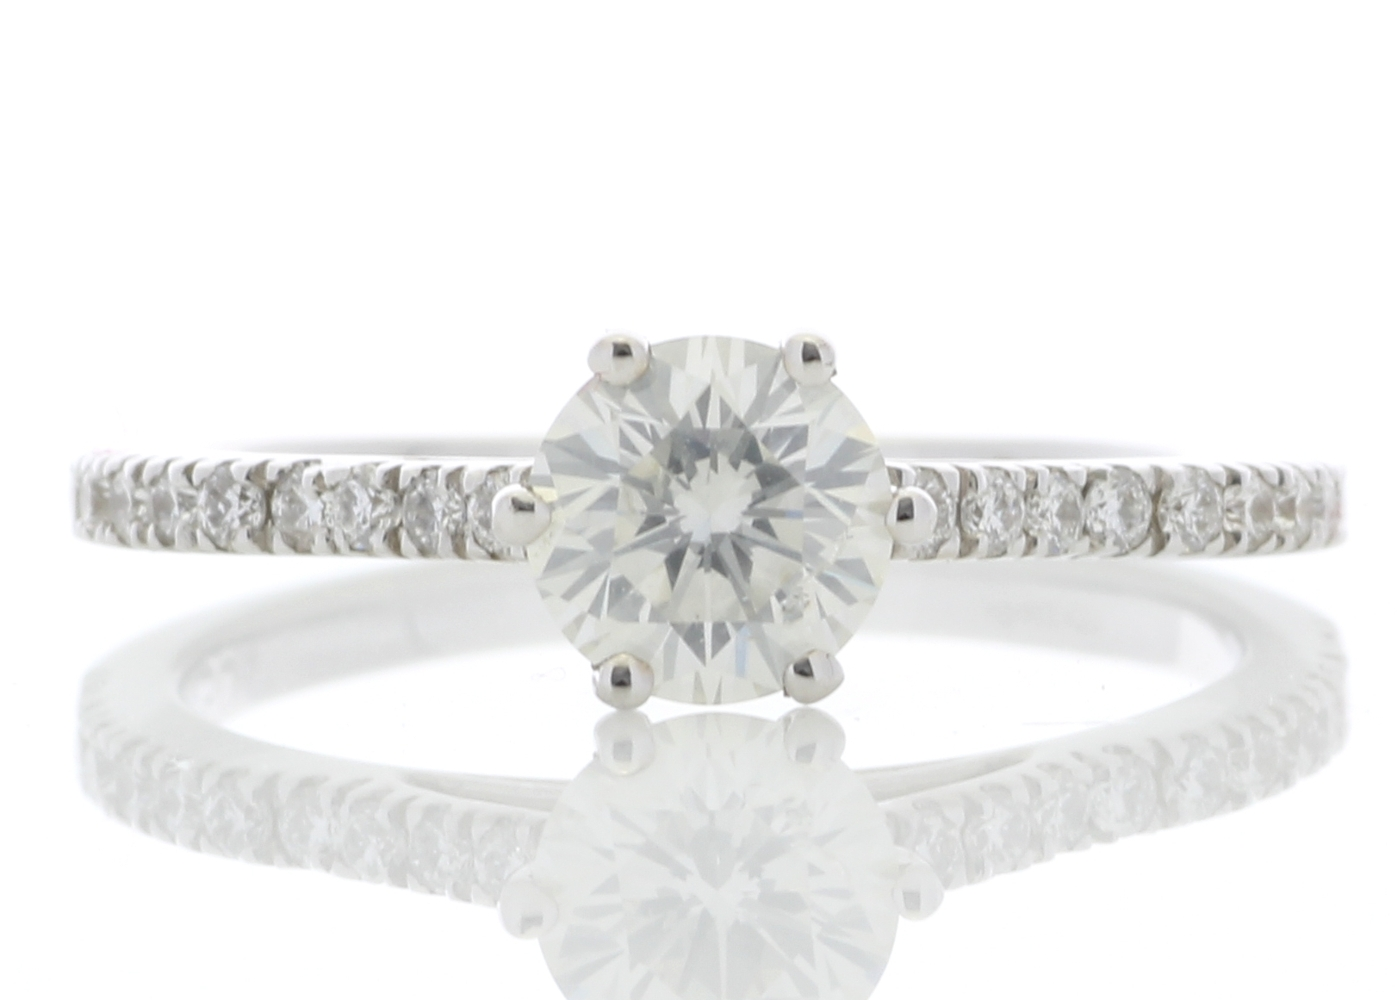 18ct White Gold Solitaire Diamond ring With Stone Set Shoulders 0.90 Carats